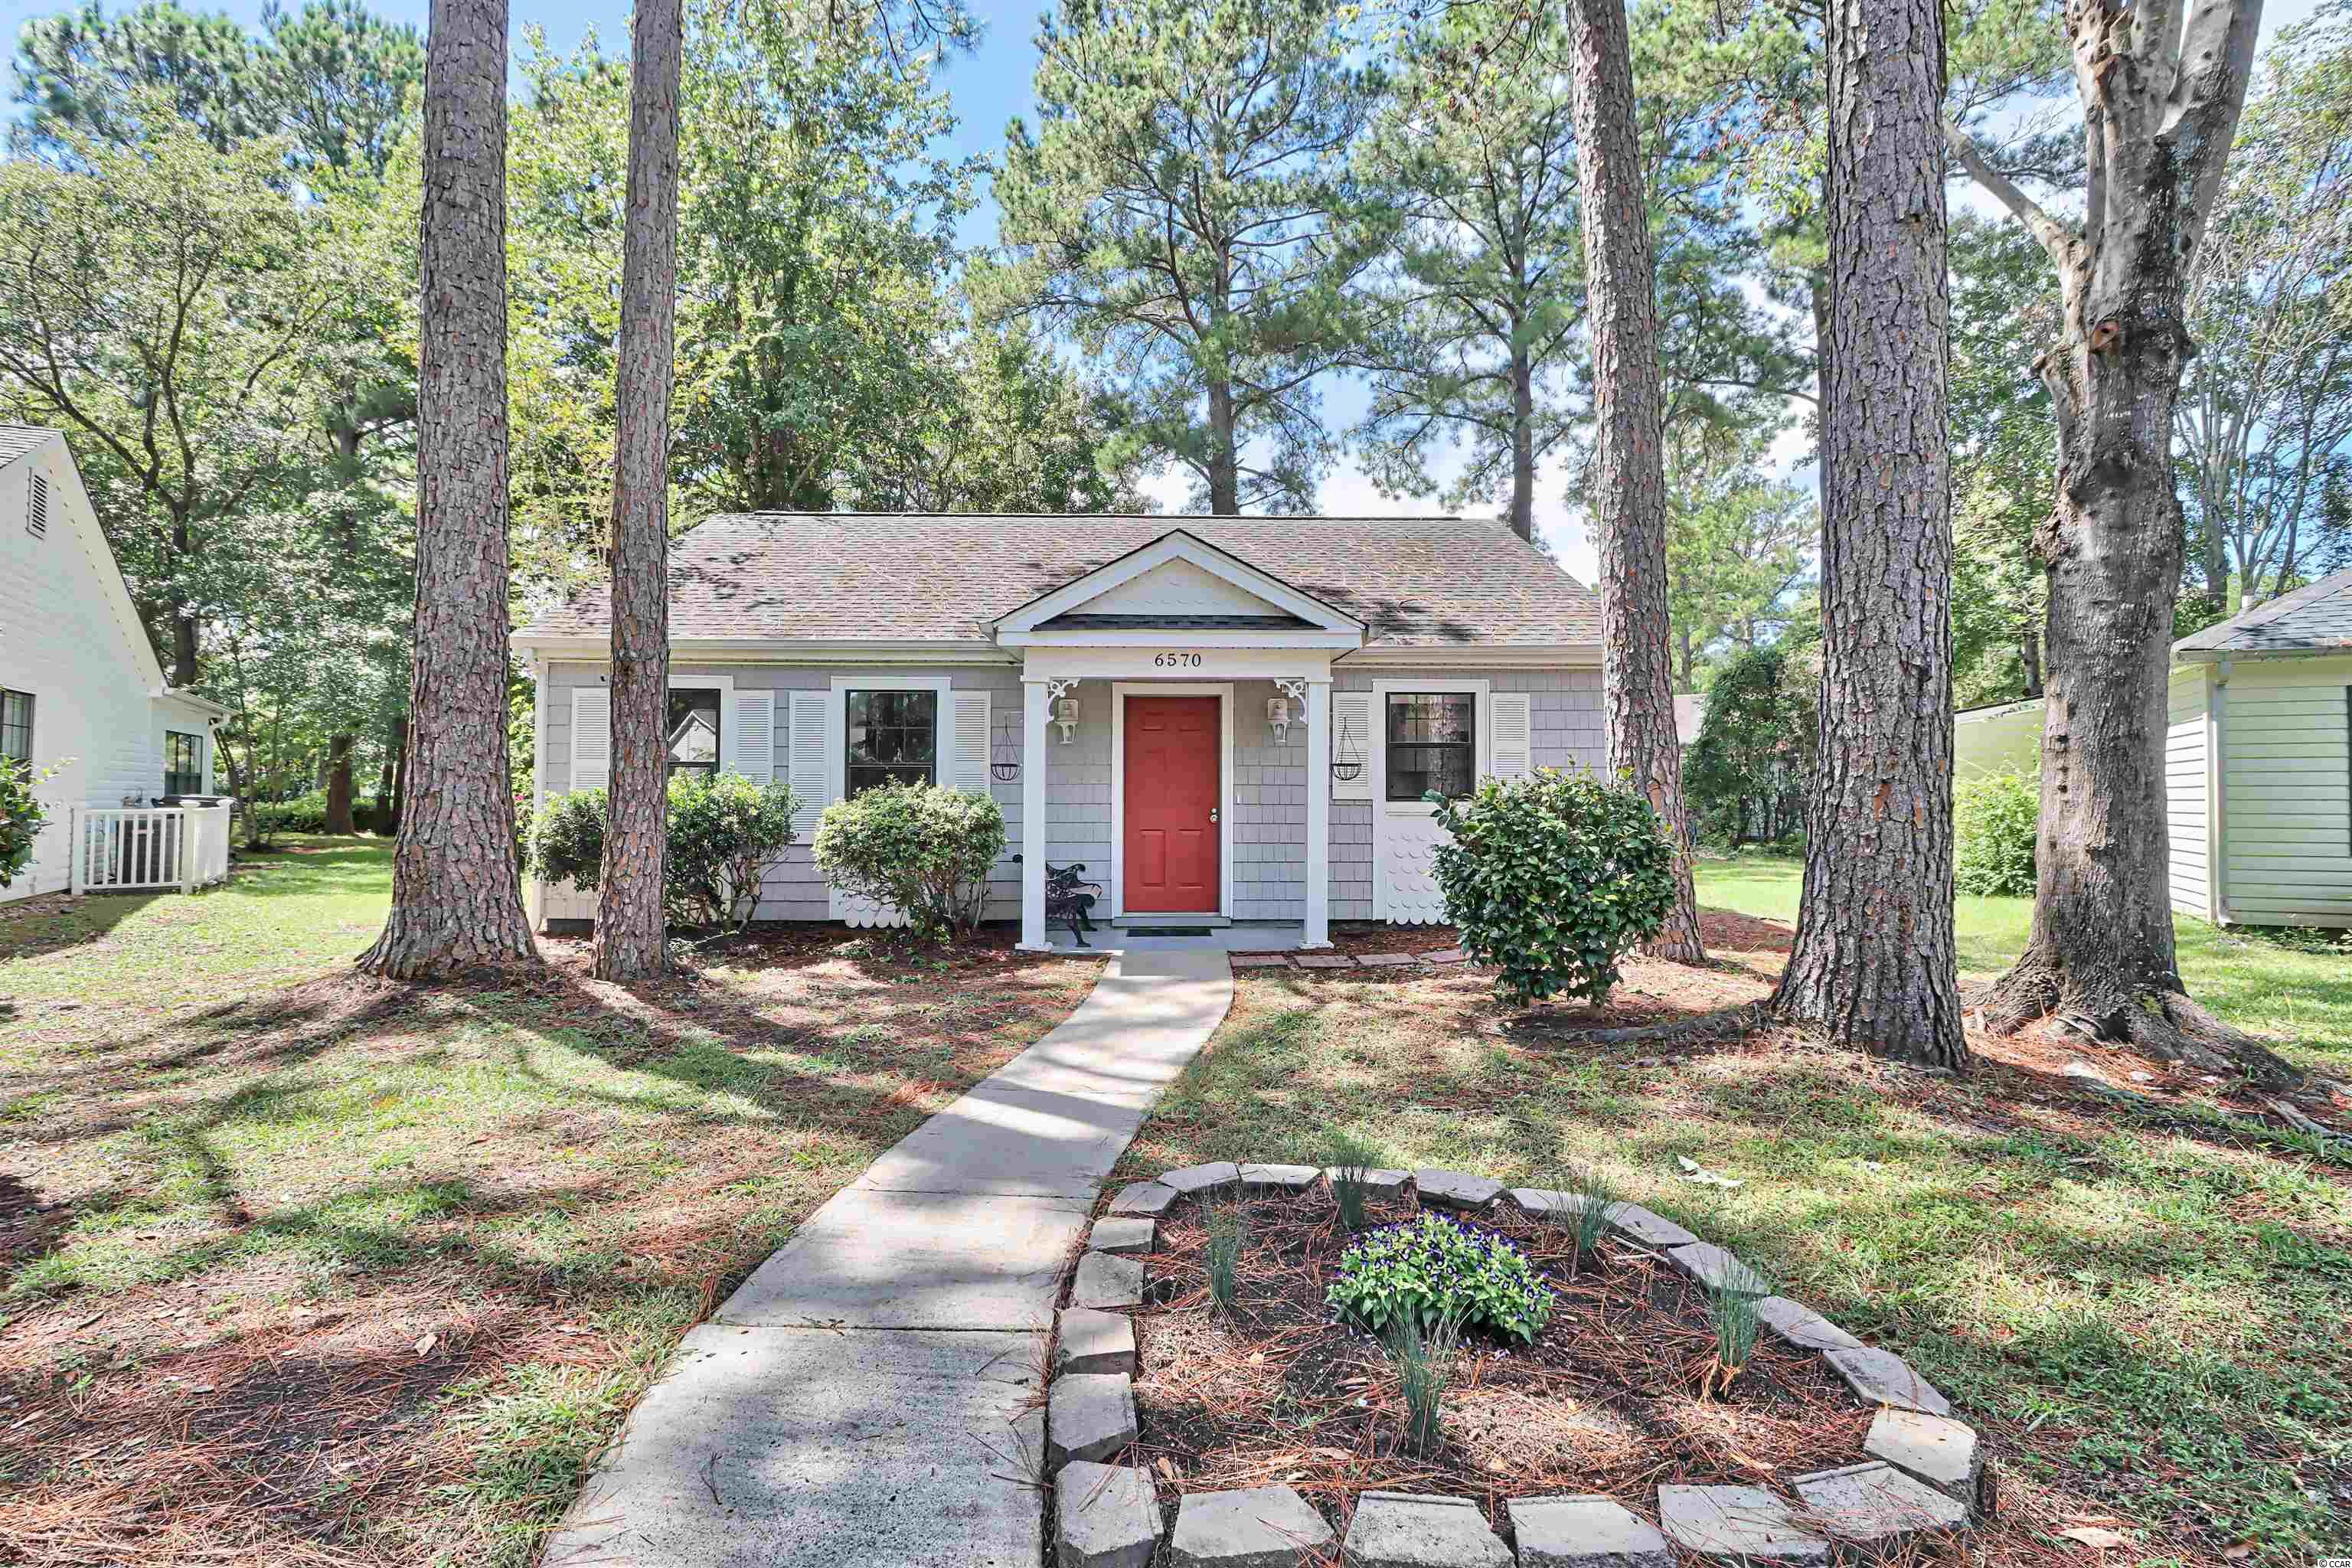 Come see this newly renovated home located in the Myrtle Beach Golf and Yacht community. This two bedroom and two bathroom home features new Luxury Vinyl Plank flooring and fresh paint with newly finished ceilings throughout.  The kitchen has been completely updated with white shaker cabinets, stainless steel appliances, and granite counters tops which include a lowered bar.  The living room leads to the newly conditioned Carolina Room giving that extra living area everyone enjoys.  Both bedrooms have newly installed ceiling fans and nice closet space.  Both bathrooms include newly installed toilets and a new vanity in the master bath with extra storage.  Enjoy your outside time on your rear patio and use your two built in storage rooms to store those gardening tools.  Myrtle Beach Golf & Yacht offers 24/7 security at the entrance gate, community pool, hot tub, play ground, and picnic area as well as additional community activities. All of this is just minutes to beaches, the Intracoastal Waterway, golf courses, shopping, dining, the Murrells Inlet Boardwalk and other great area attractions.